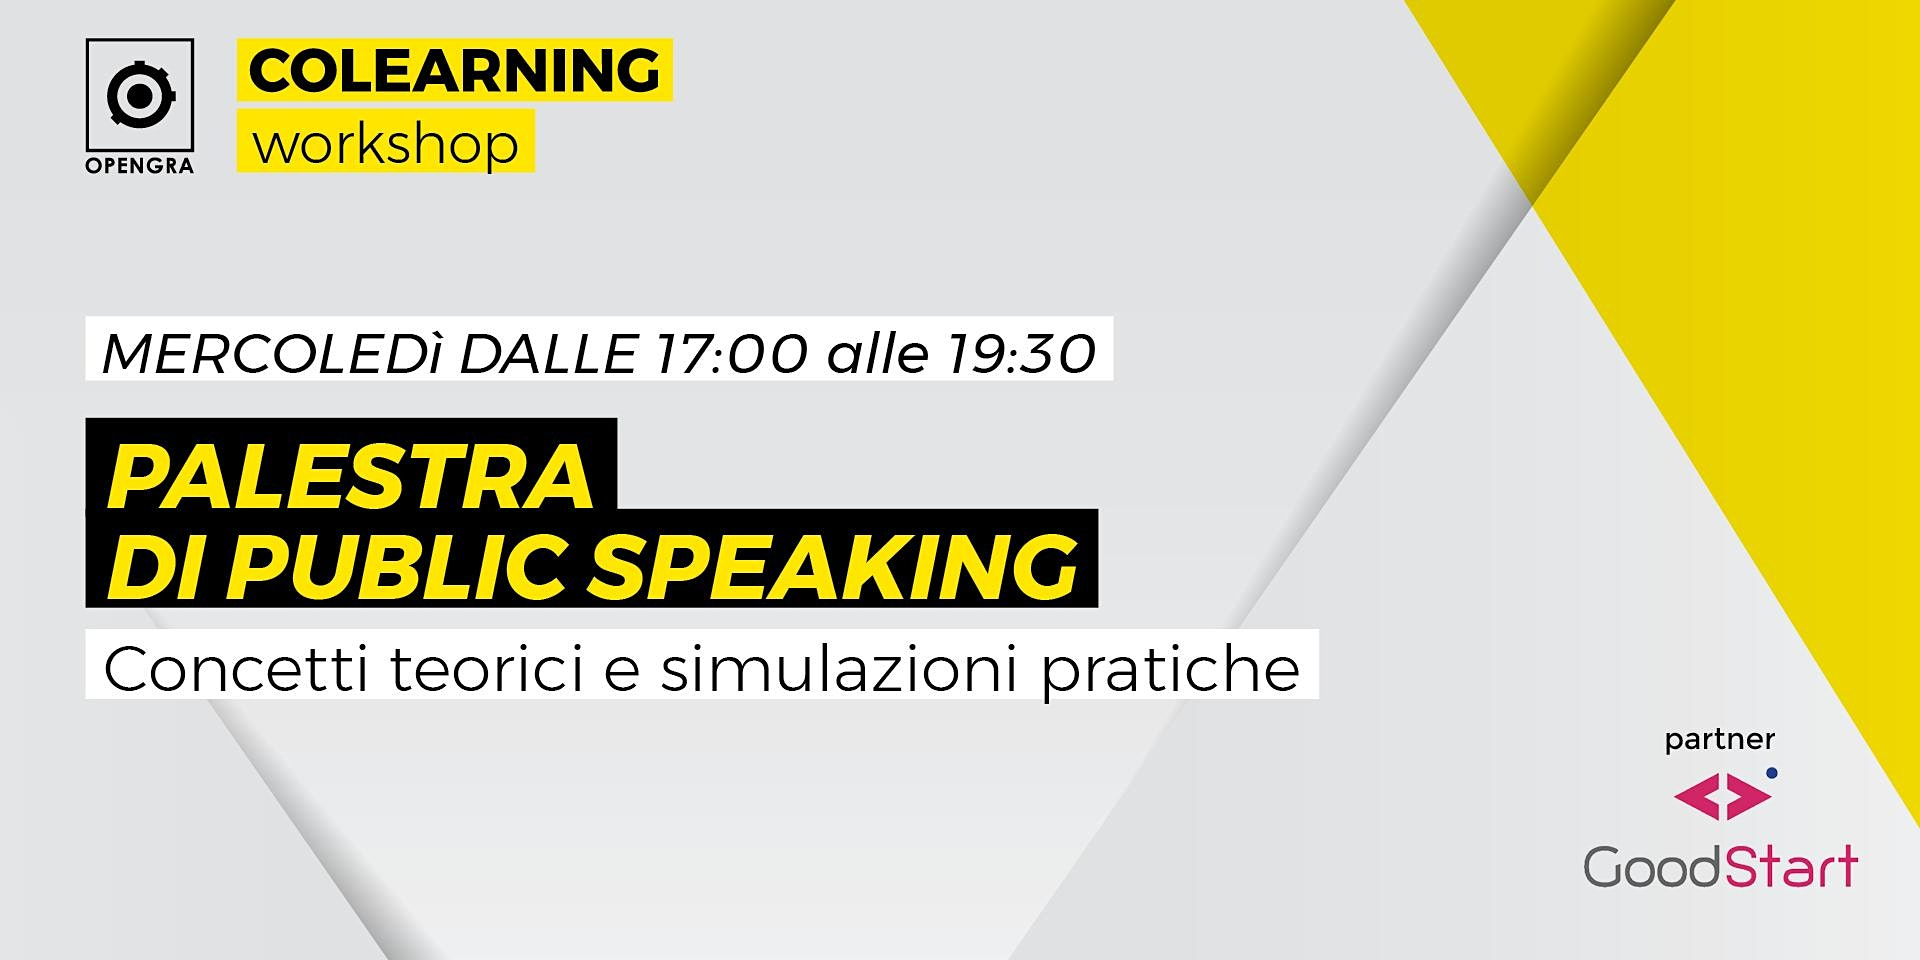 Palestra di public speaking